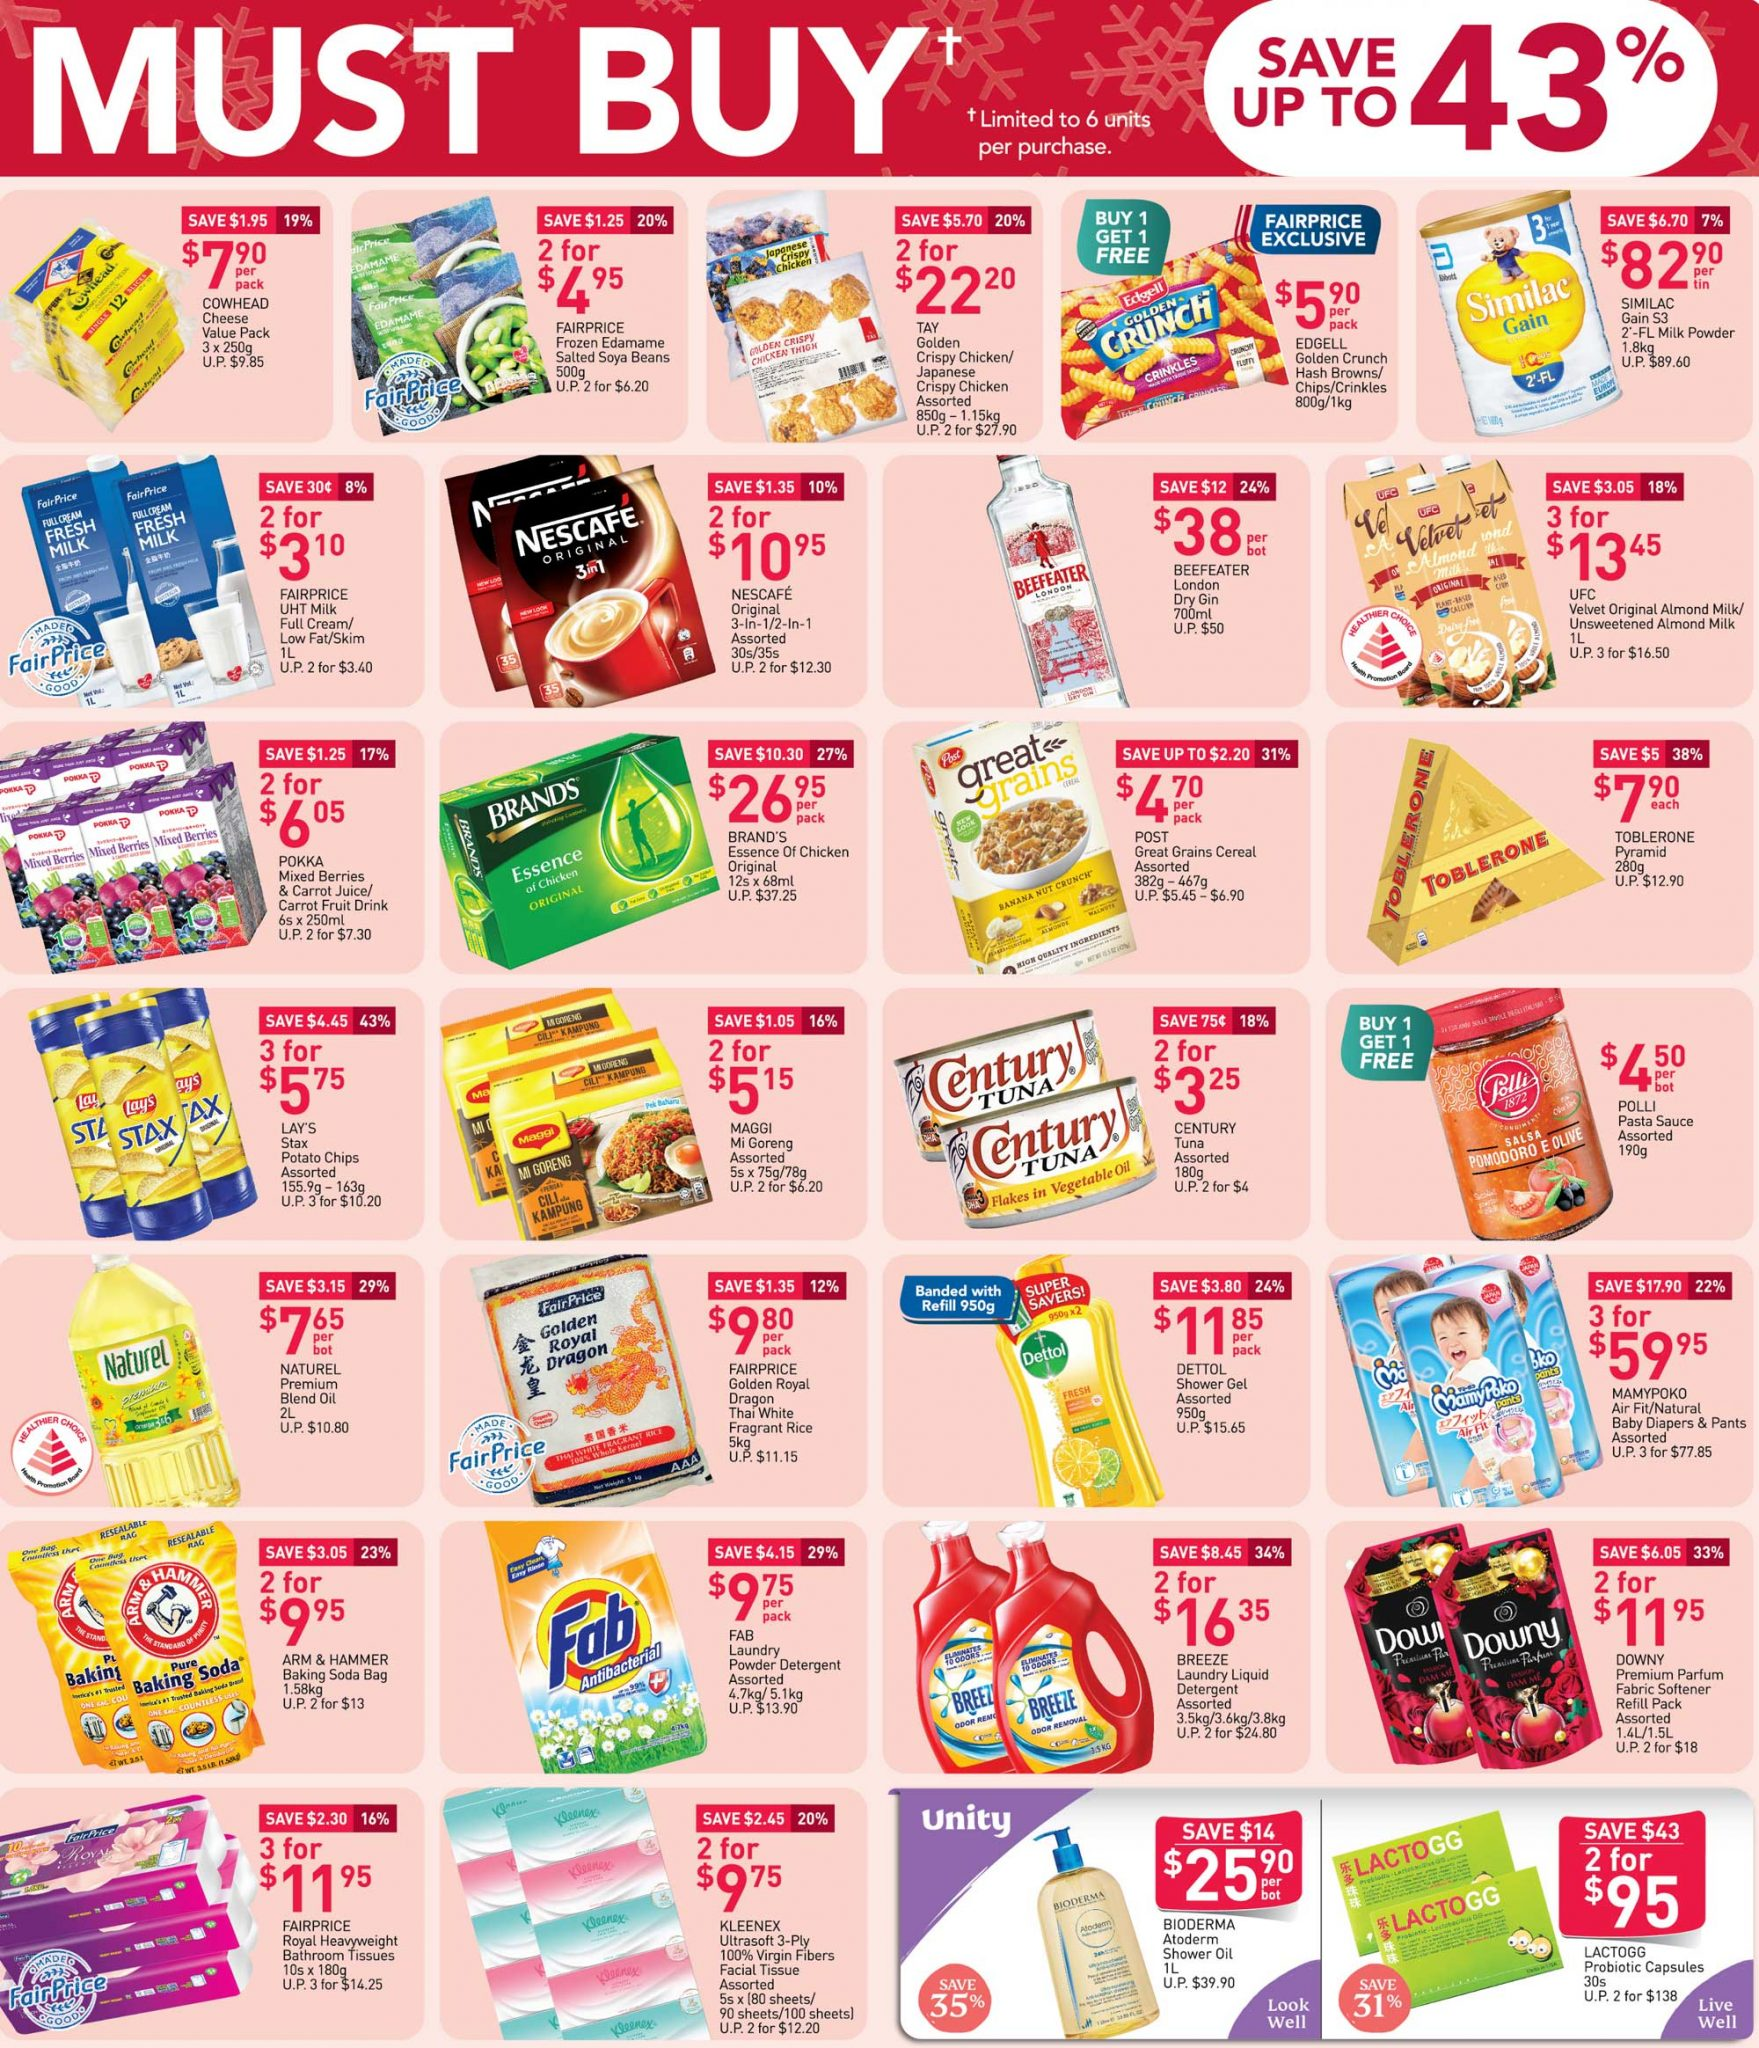 FairPrice must-buy items from now till 9 December 2020